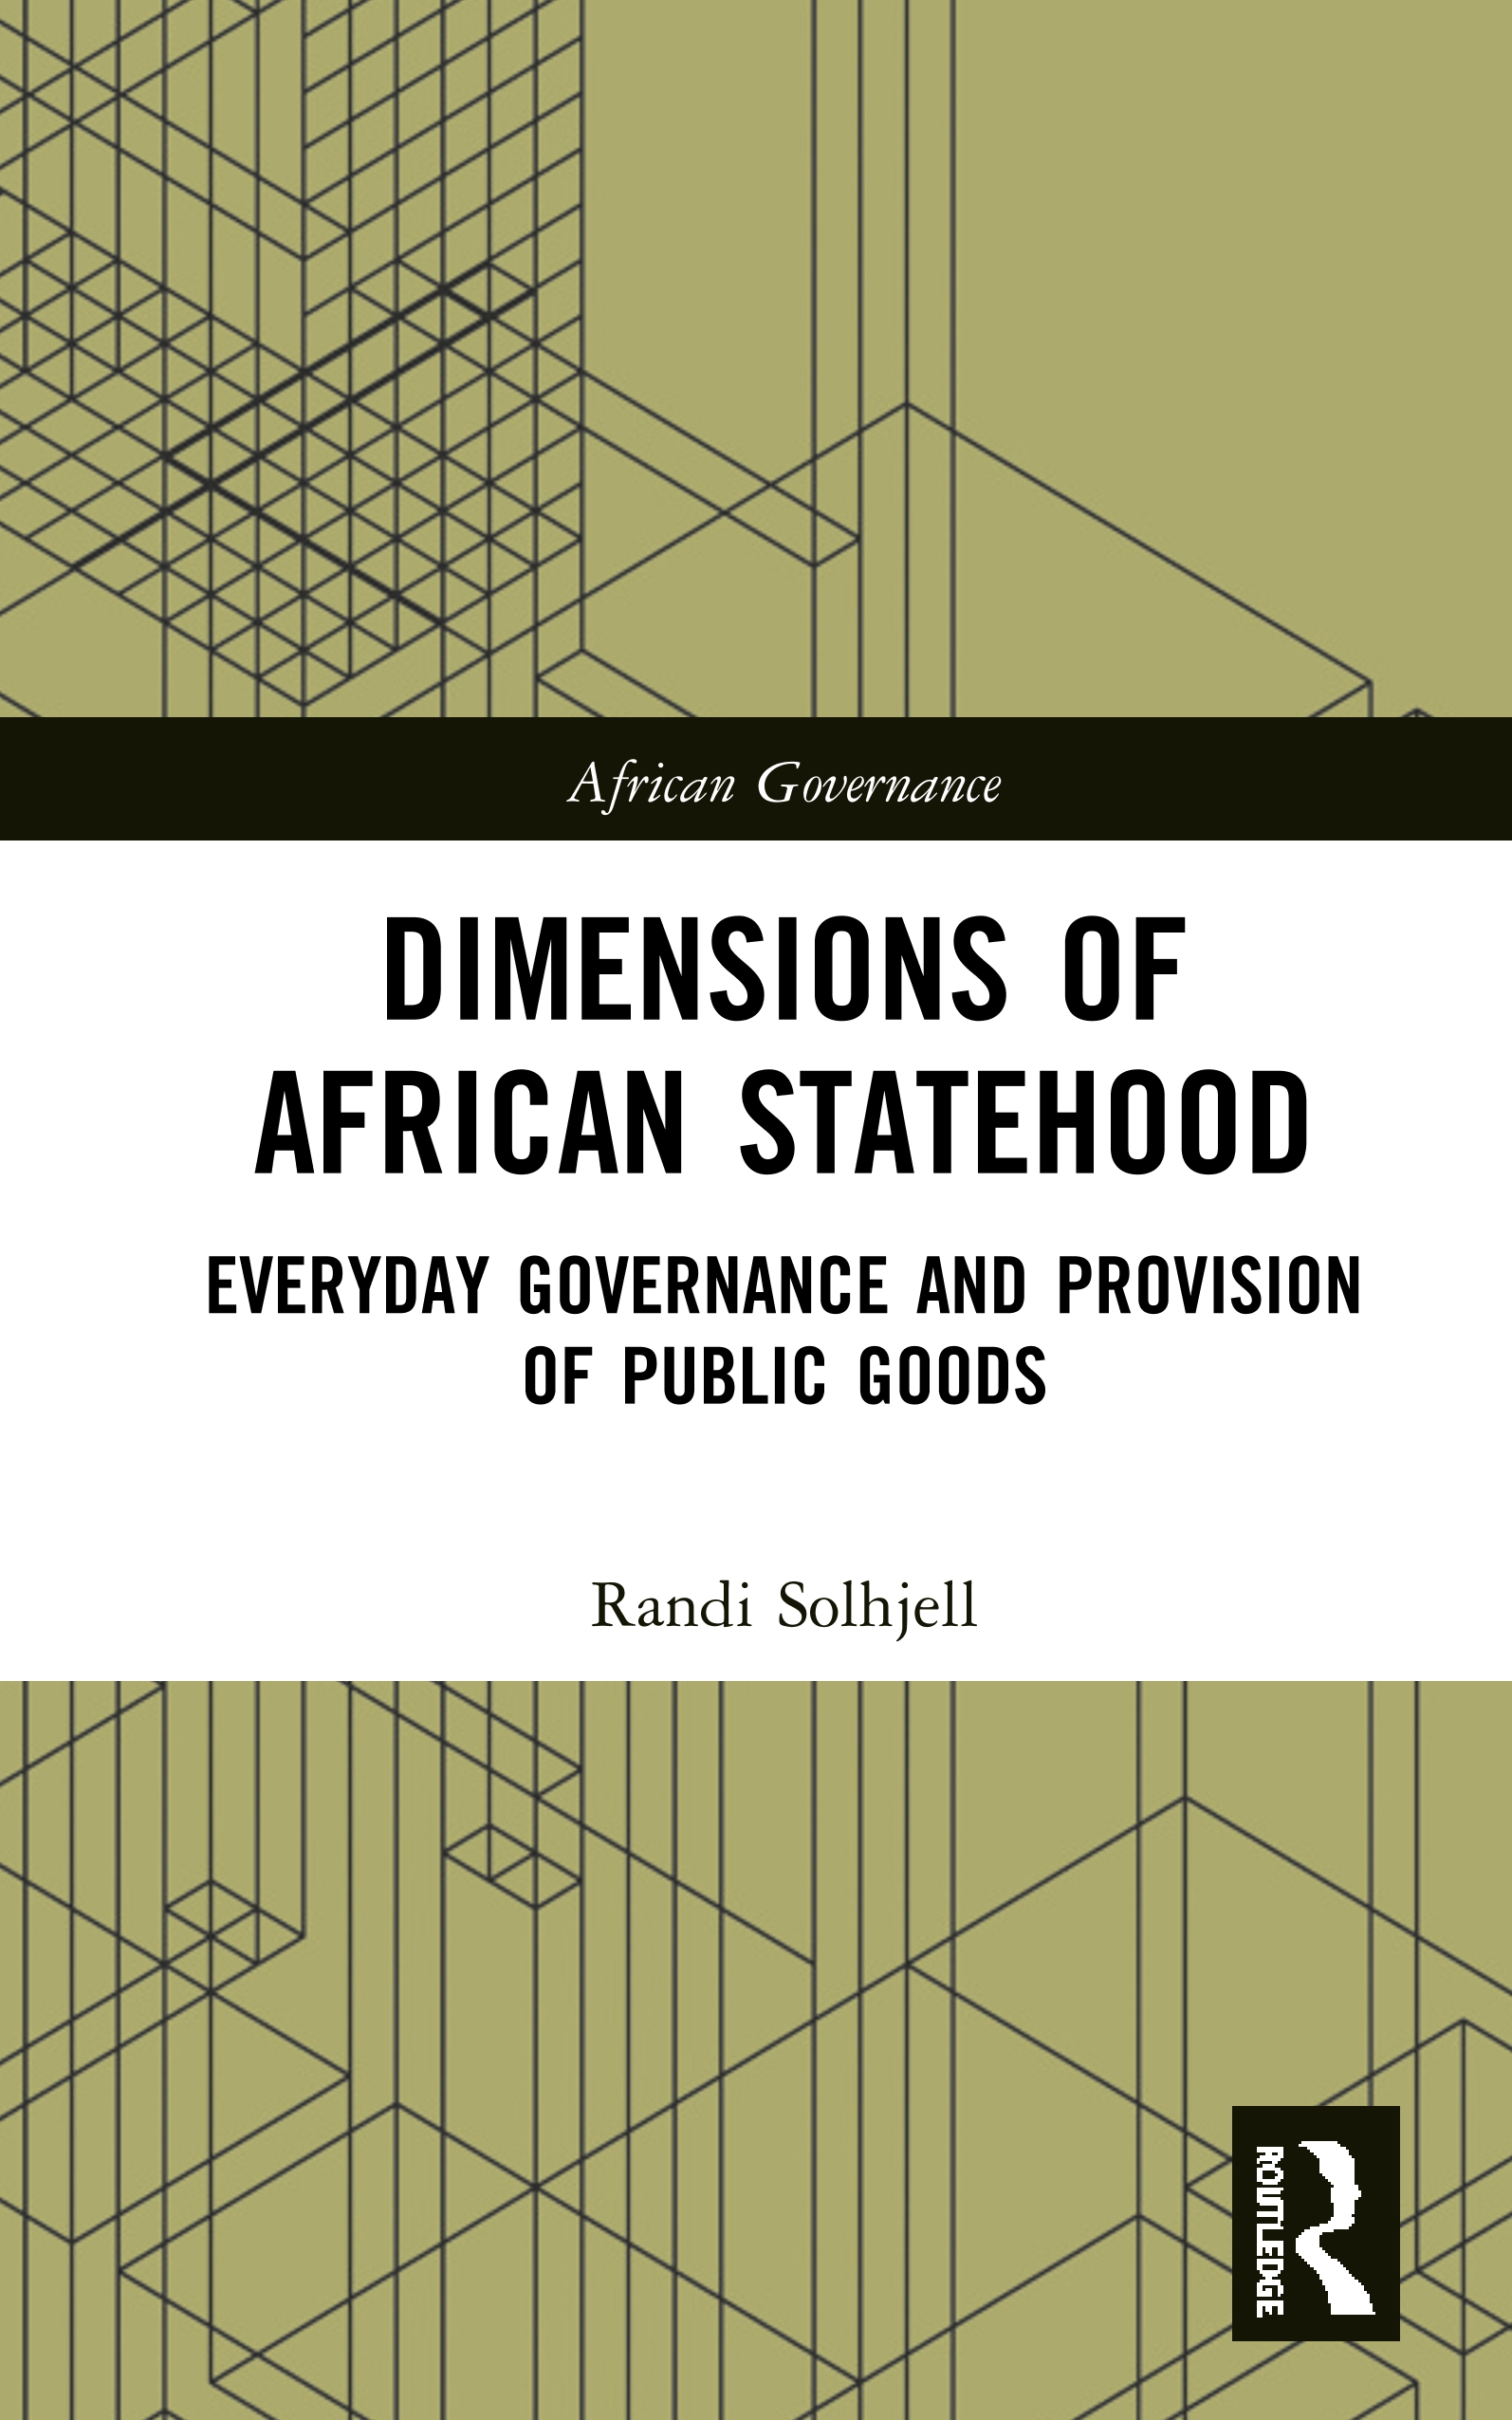 Dimensions of African Statehood: Everyday Governance and Provision of Public Goods book cover